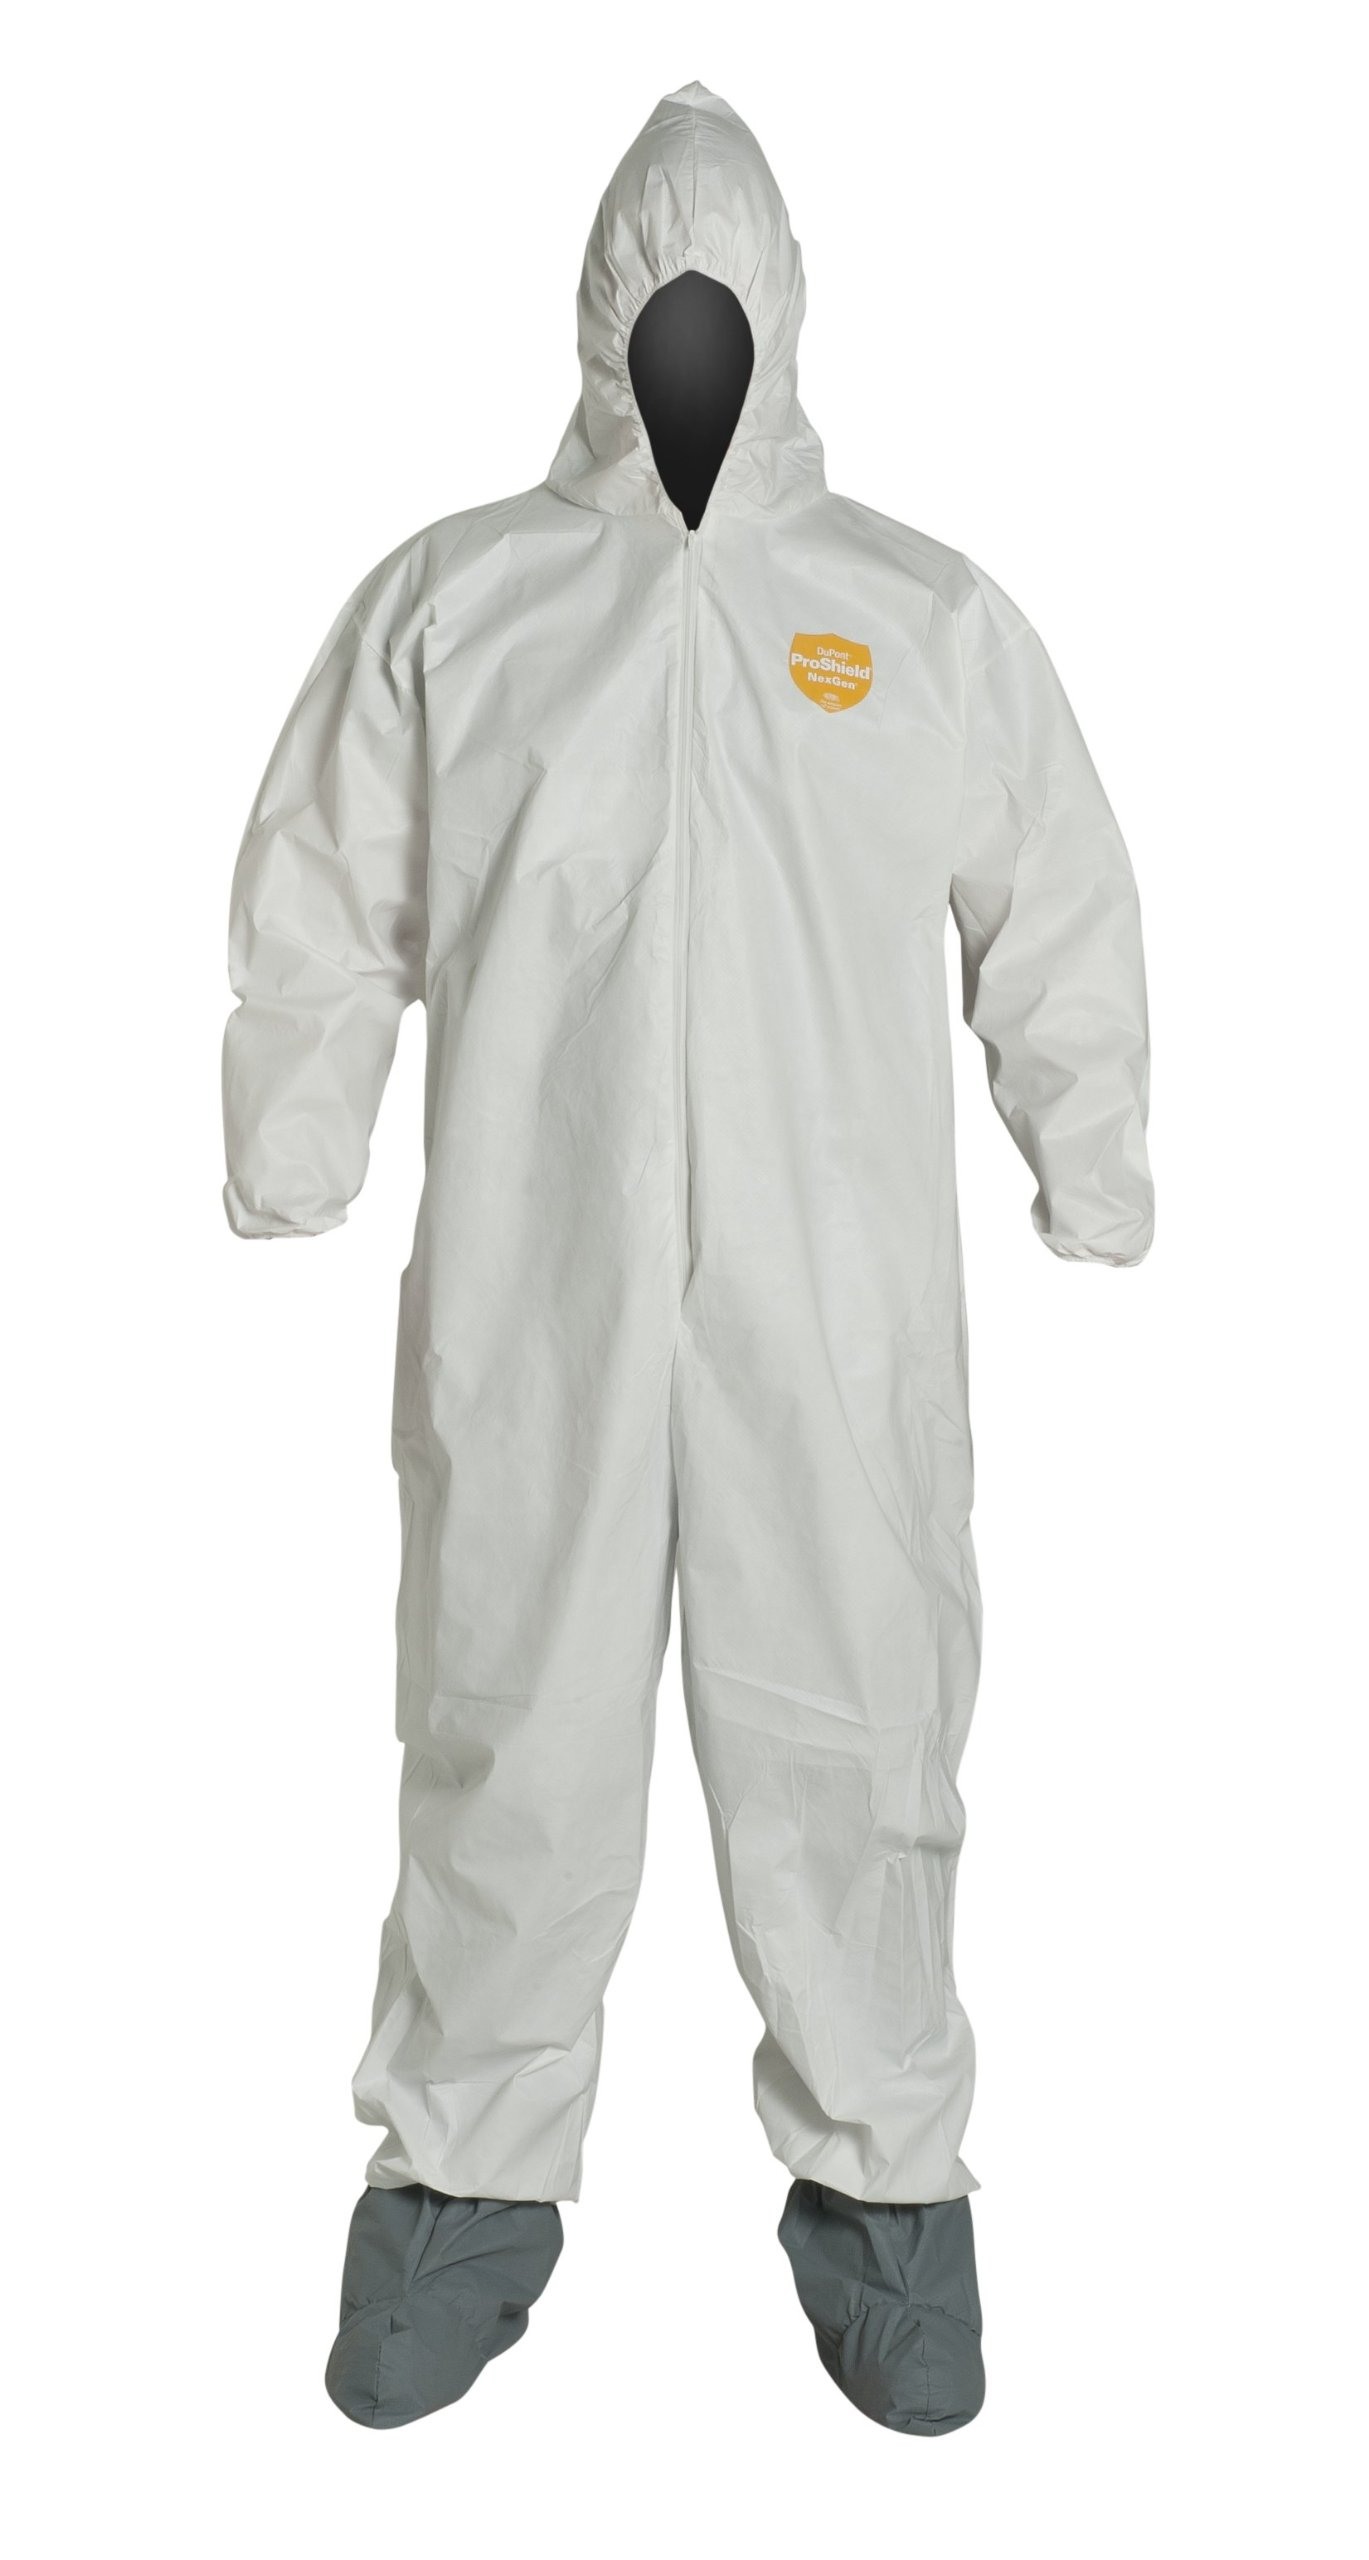 DuPont ProShield 60 NG122S Disposable Protective Coverall with Elastic Cuff, Hood and Boots, White, 4X-Large (Pack of 25)